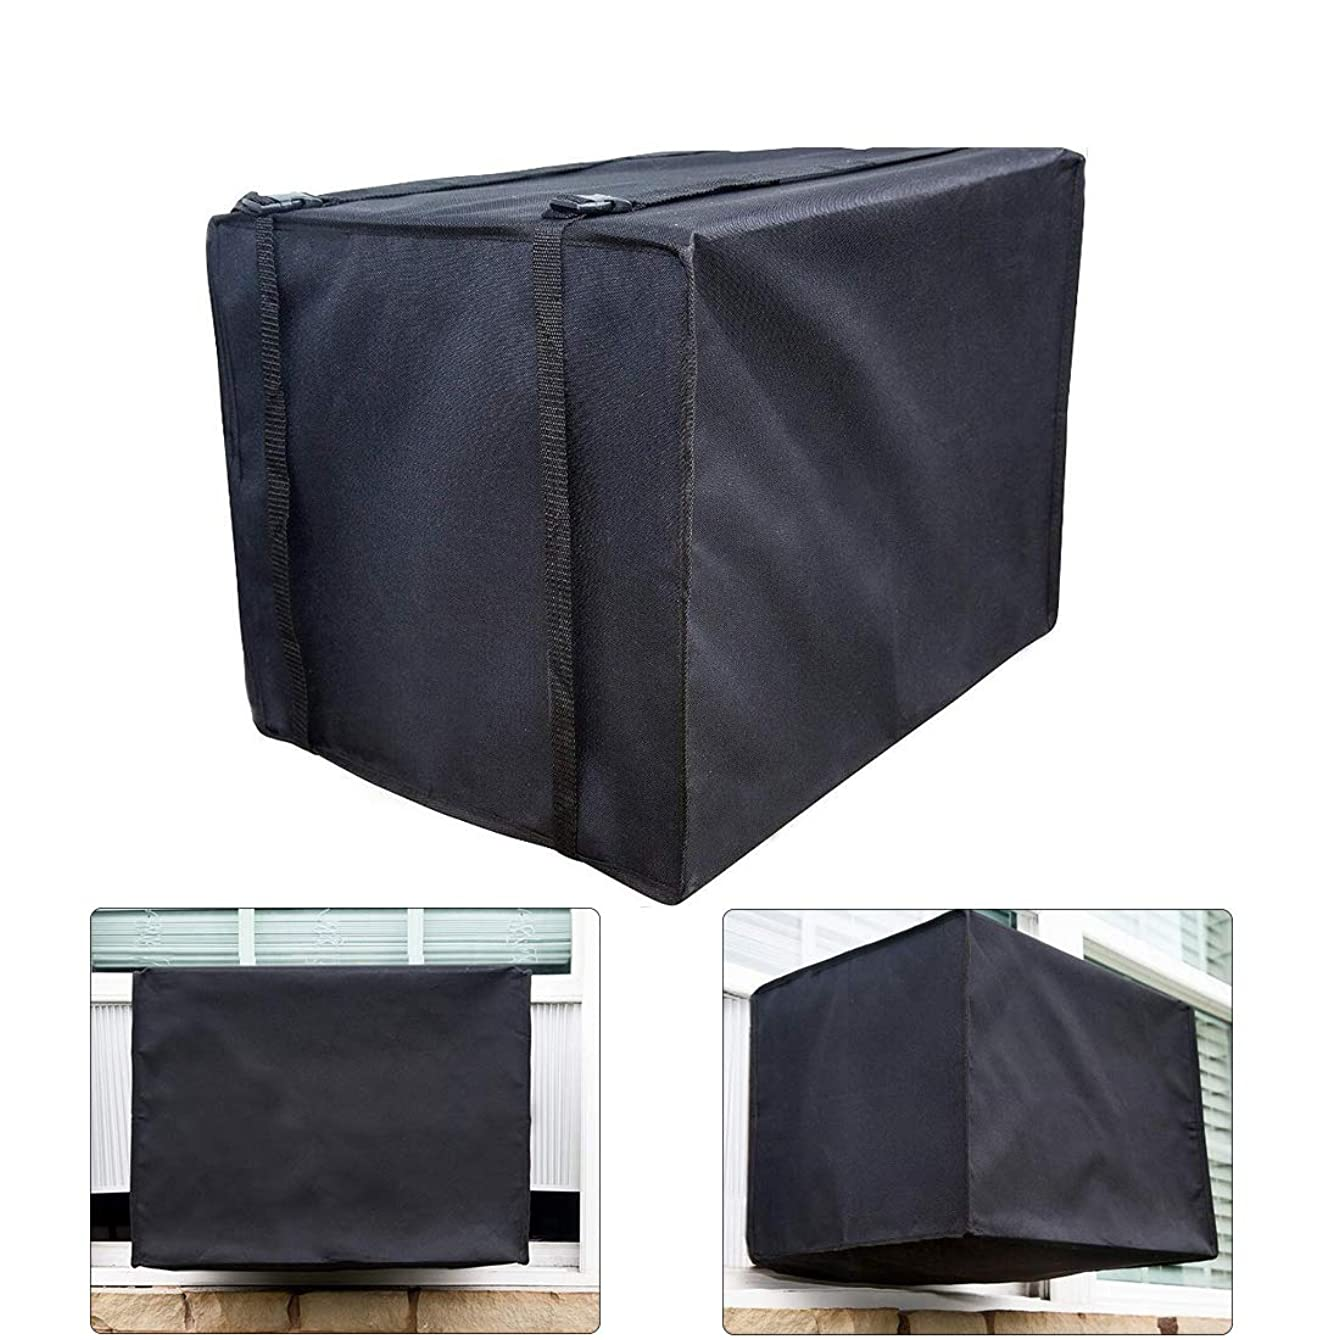 FLR Outdoor Air Conditioner Cover-Waterproof Dustproof Rectangular AC Defender Air-Conditioning Protector for Outdoor Window Black/14.8x20.6x15.6in